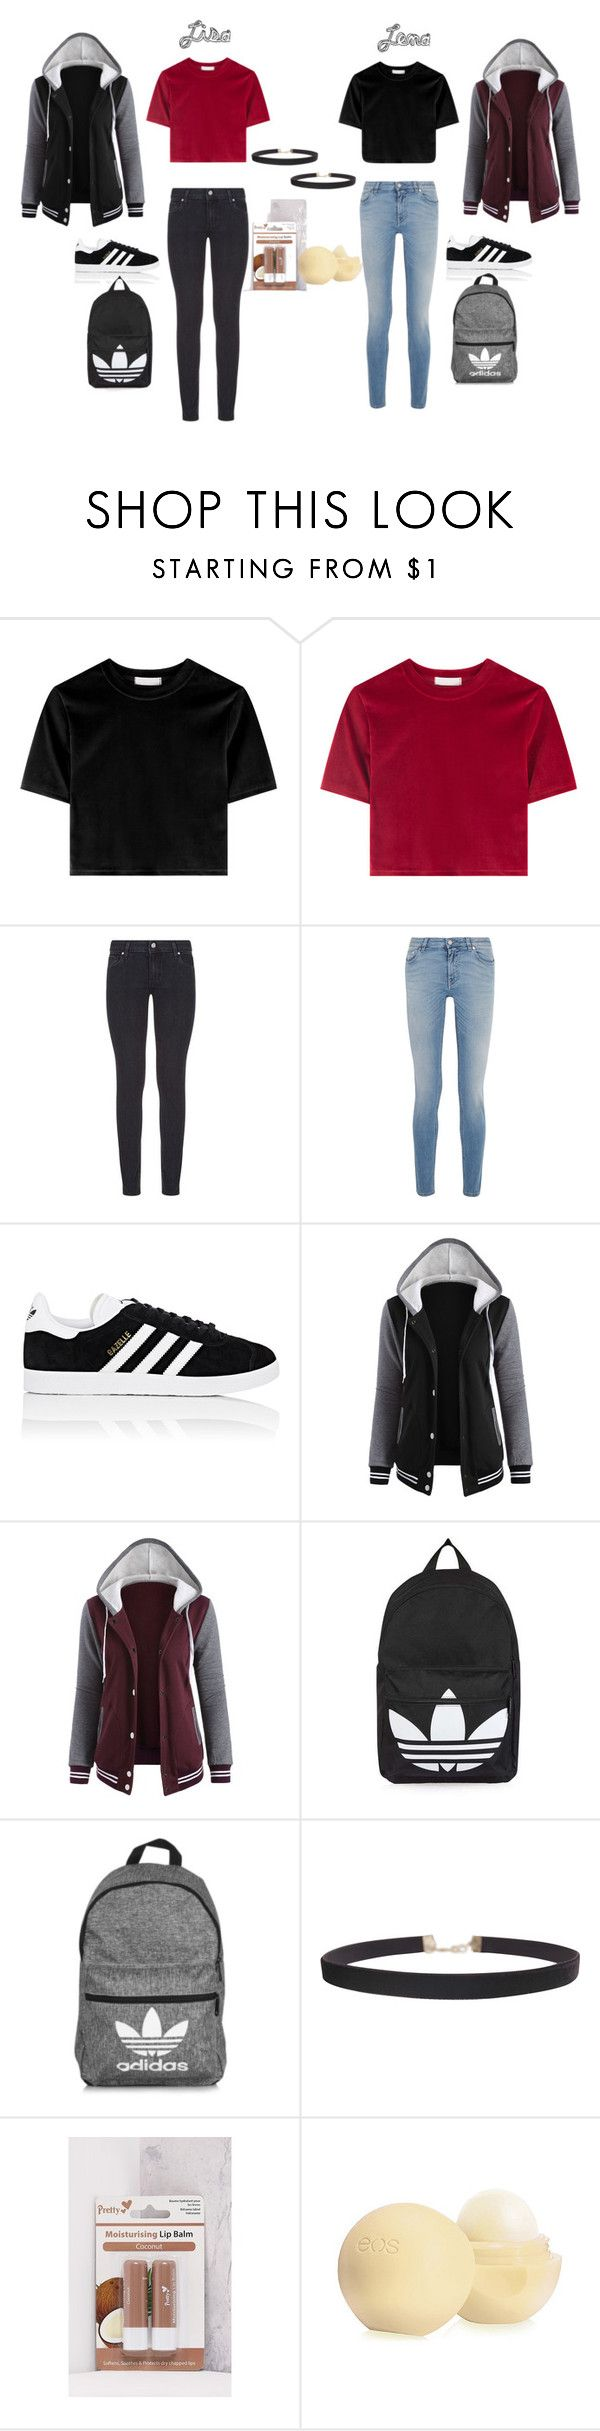 """""""Lisa and Lena °2"""" by tery-horska ❤ liked on Polyvore featuring Paige Denim, Givenchy, adidas, Topshop and Humble Chic"""